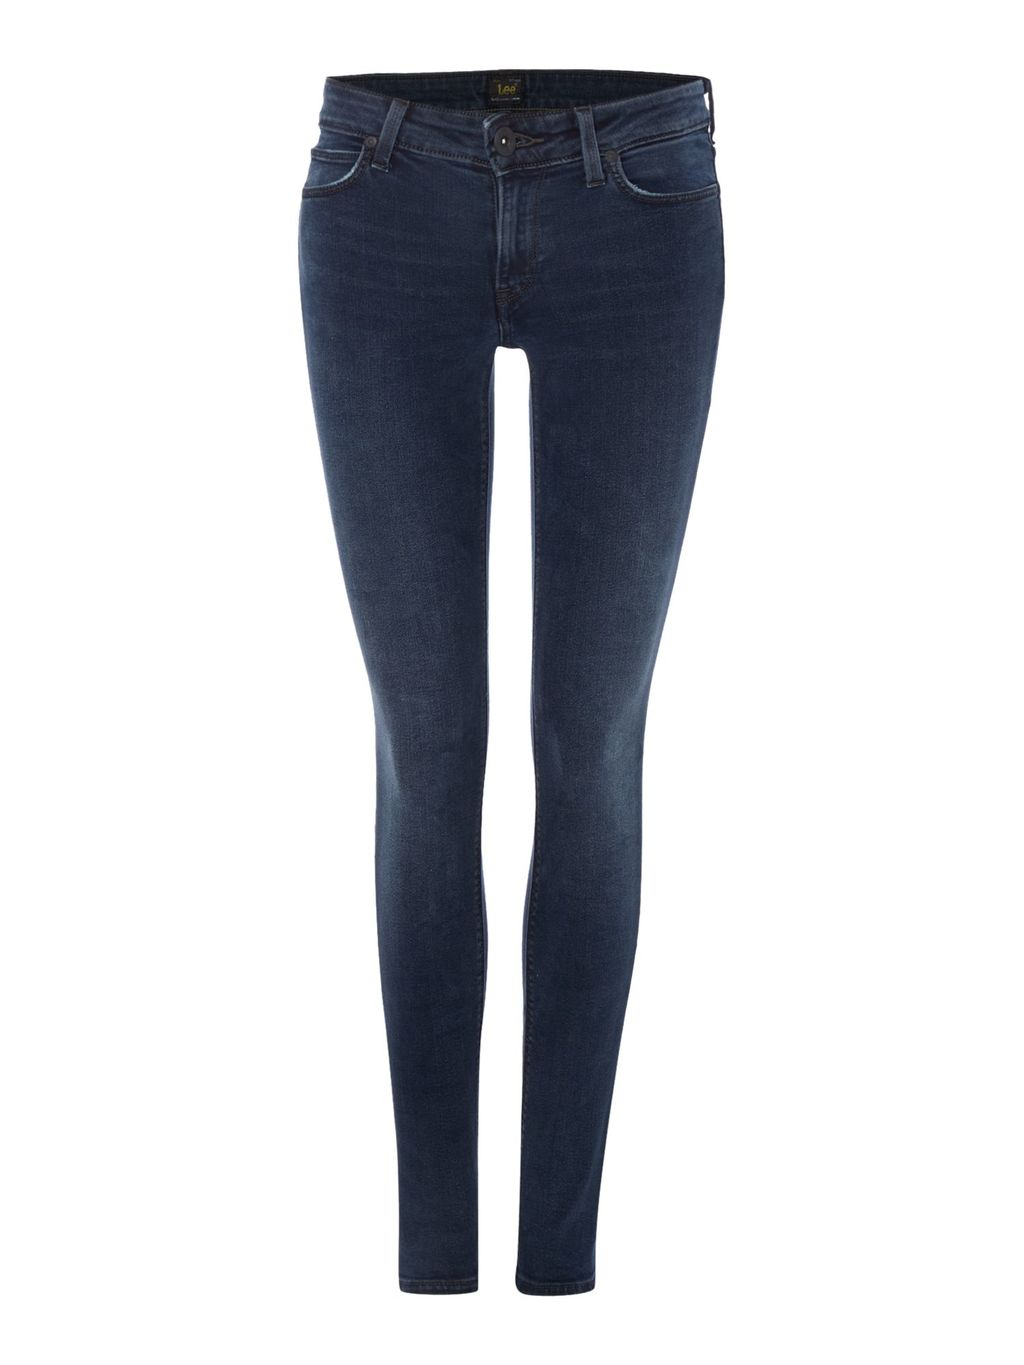 Scarlett Mid Rise Skinny Jean In Raven Blue, Denim Dark Wash - style: skinny leg; length: standard; pattern: plain; waist: low rise; pocket detail: traditional 5 pocket; predominant colour: navy; occasions: casual; fibres: cotton - stretch; texture group: denim; pattern type: fabric; season: a/w 2015